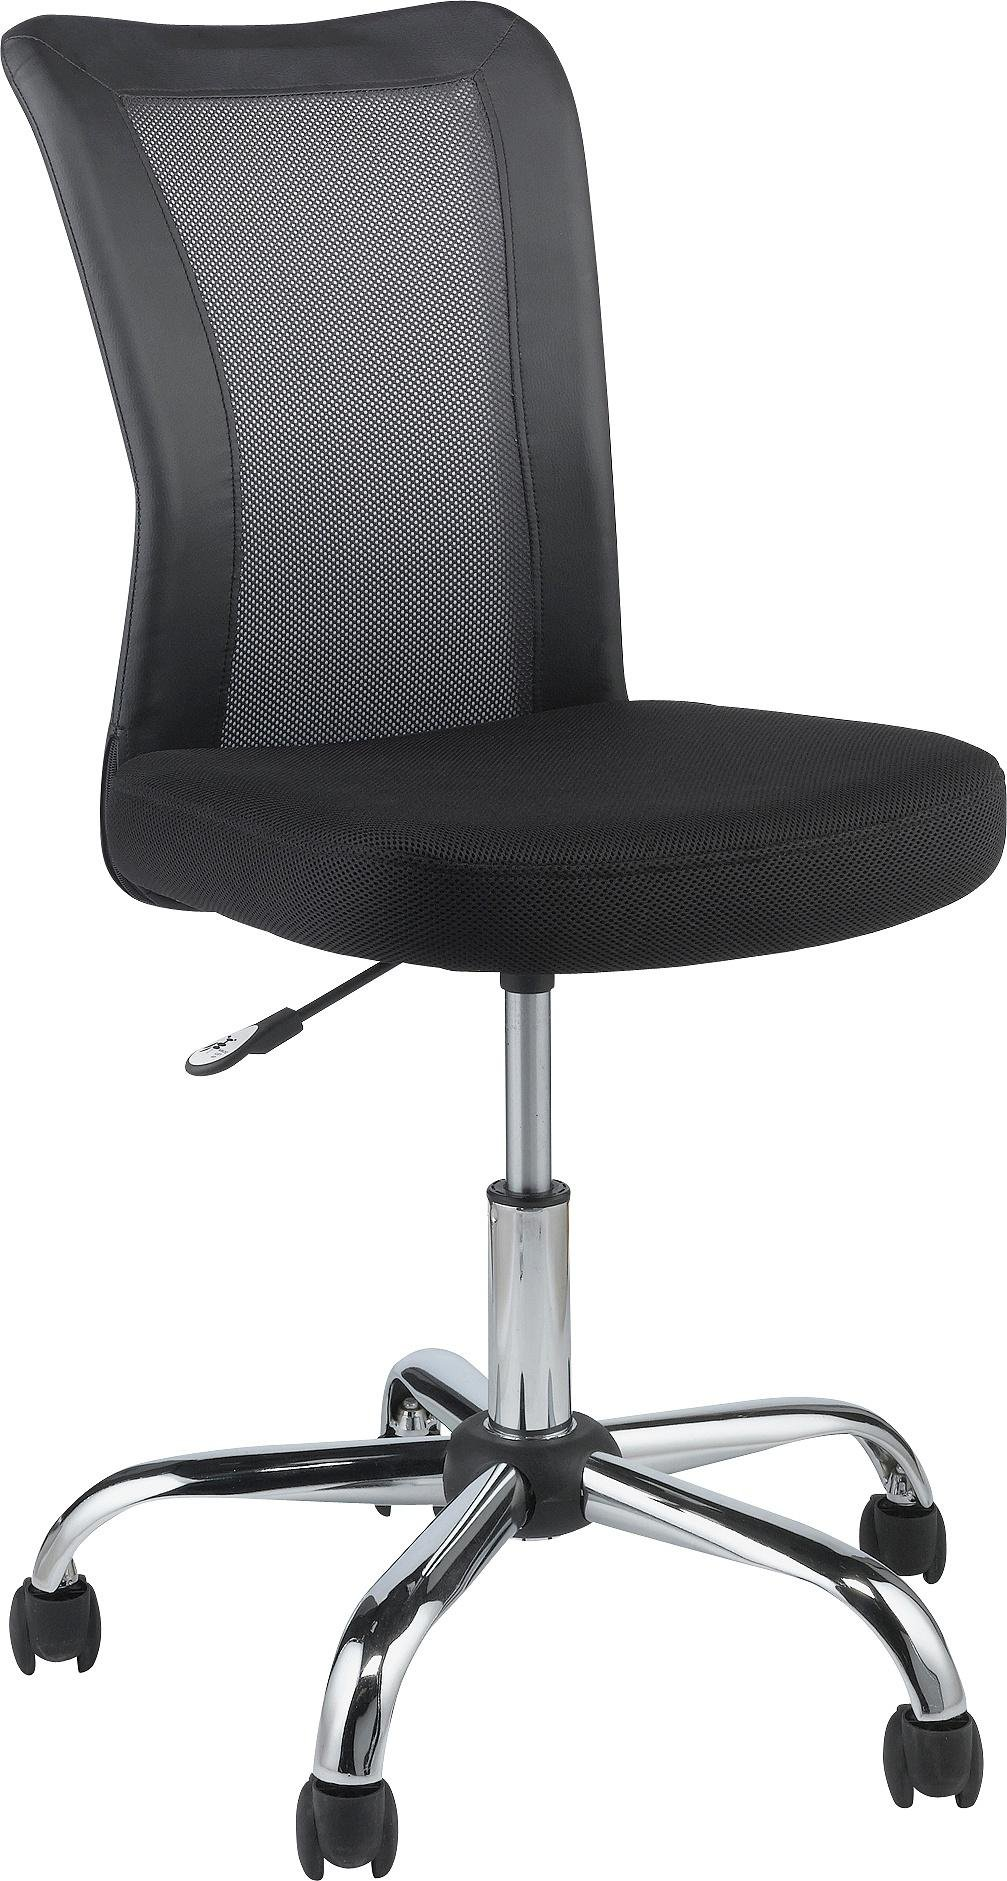 Buy HOME Reade Mesh Gas Lift Adjustable Office Chair Black at